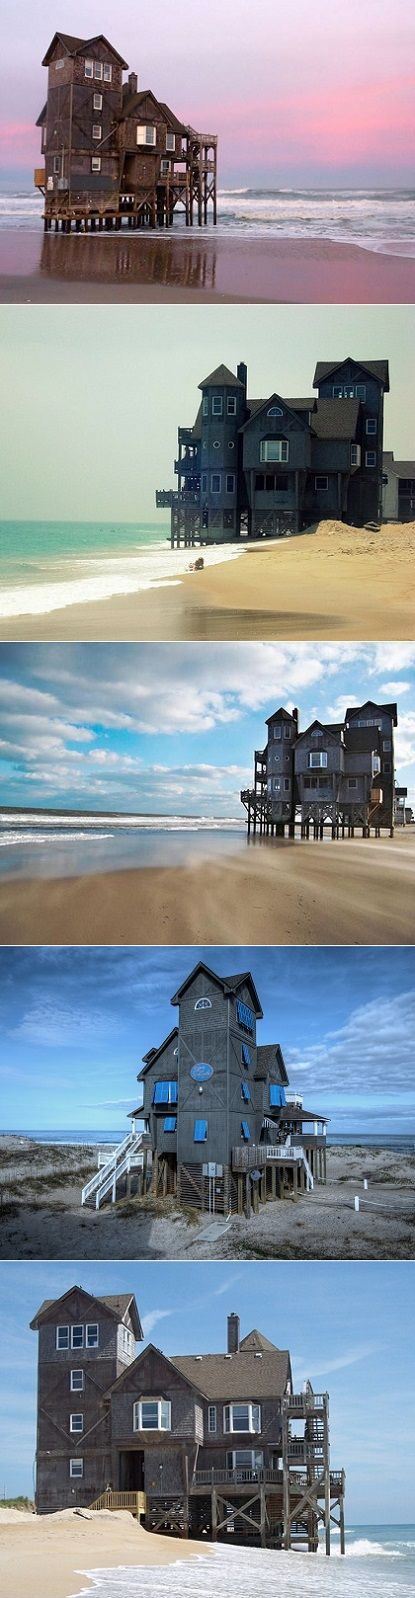 Fancy spending a romantic weekend right on the beach and waking up to the most beautiful view you've ever seen? Listen to that: this gem of an inn is not only located in the most swoonworthy part of Hatteras Island in North Carolina but it also has the...